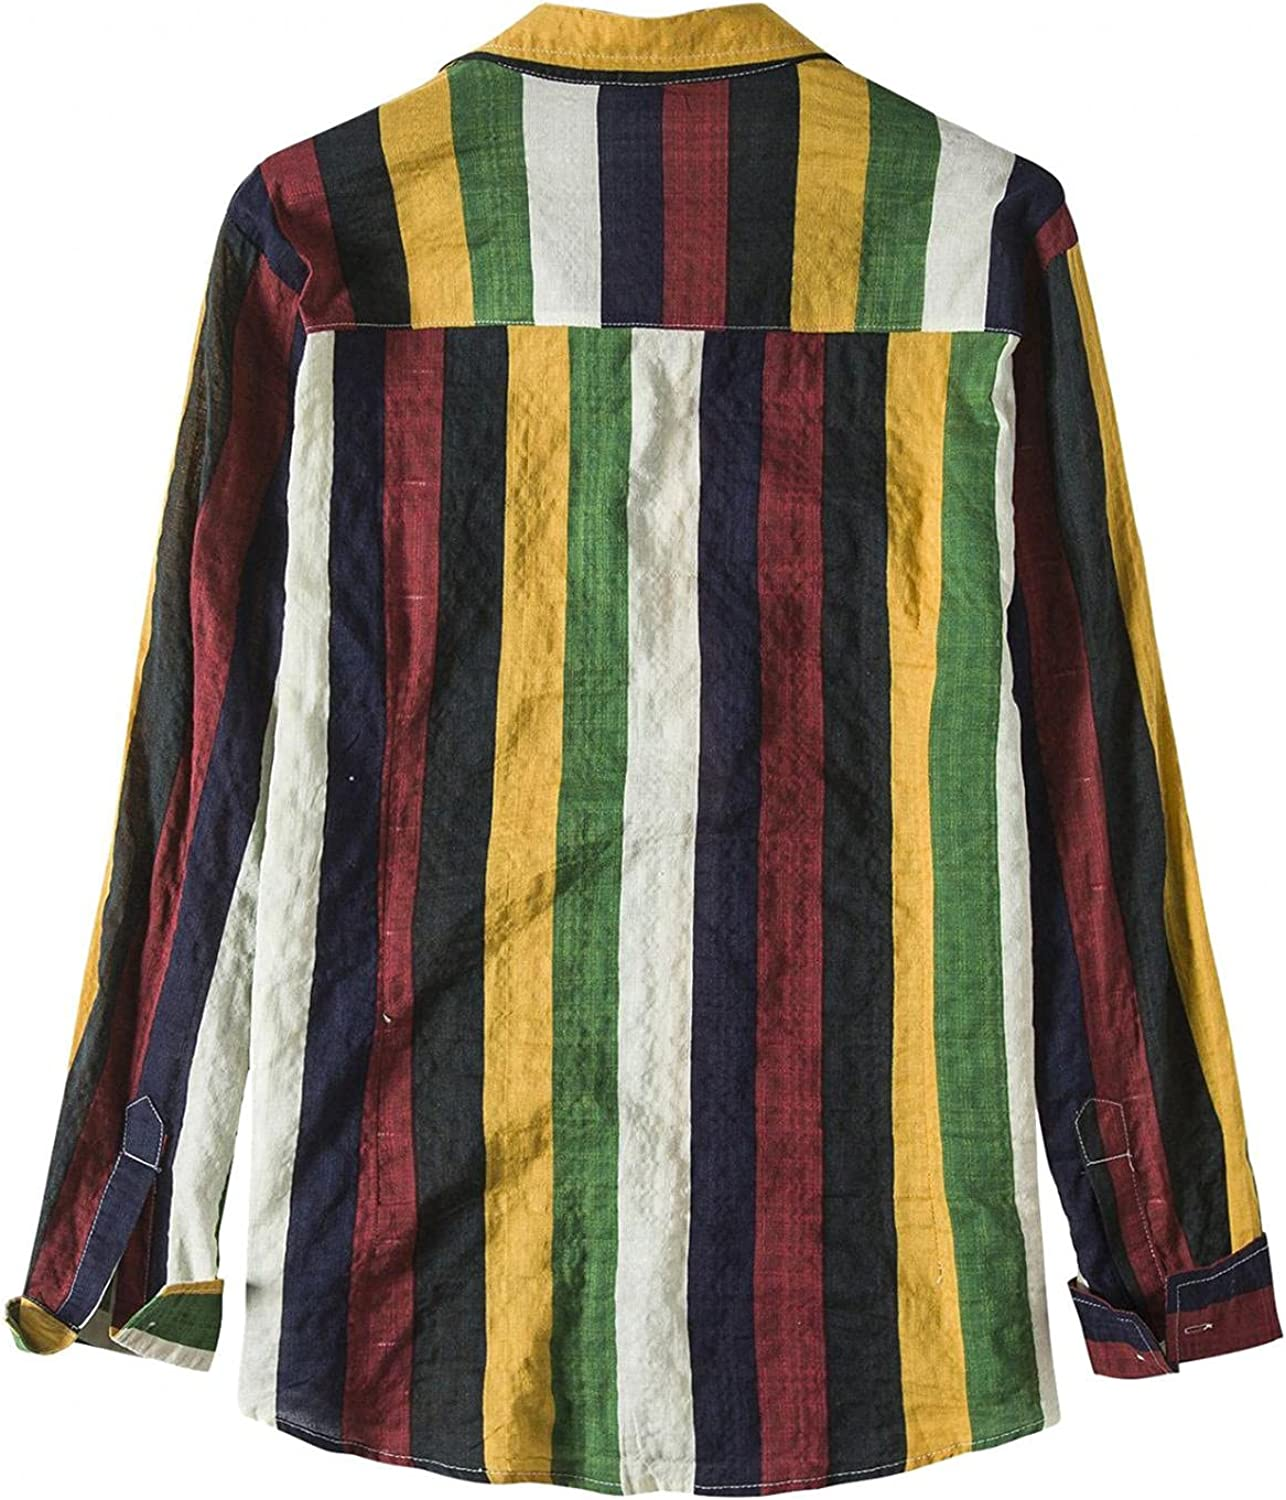 Aayomet Shirts for Men Striped Color Block Casual Long Sleeve Button Down T-Shirt Plain Pocket Loose Beach Tee Shirts Tops